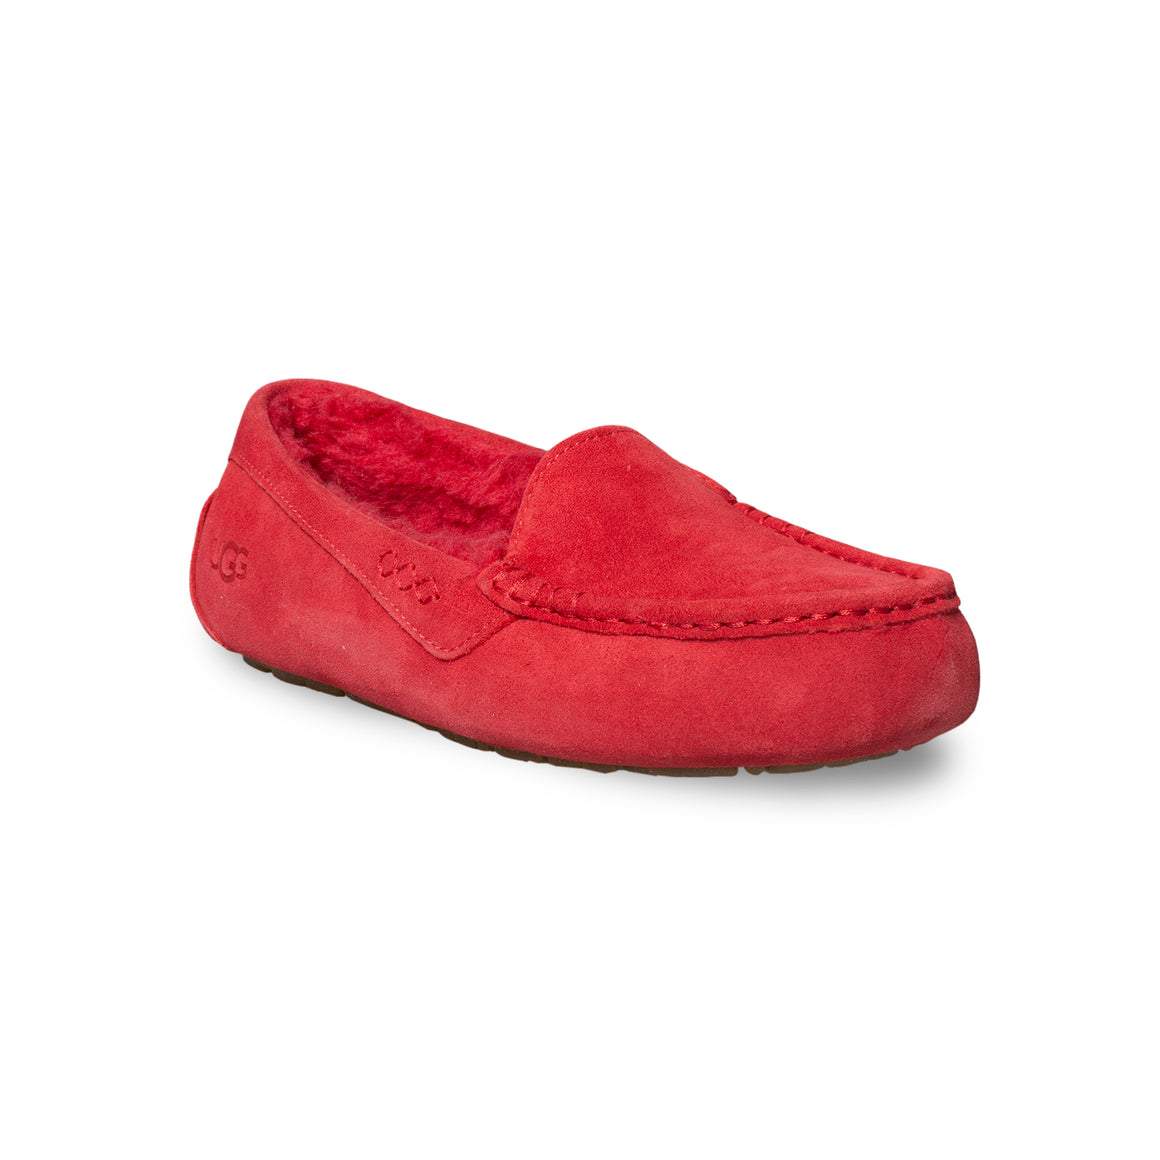 UGG Ansley Ribbon Red Slippers - Women's